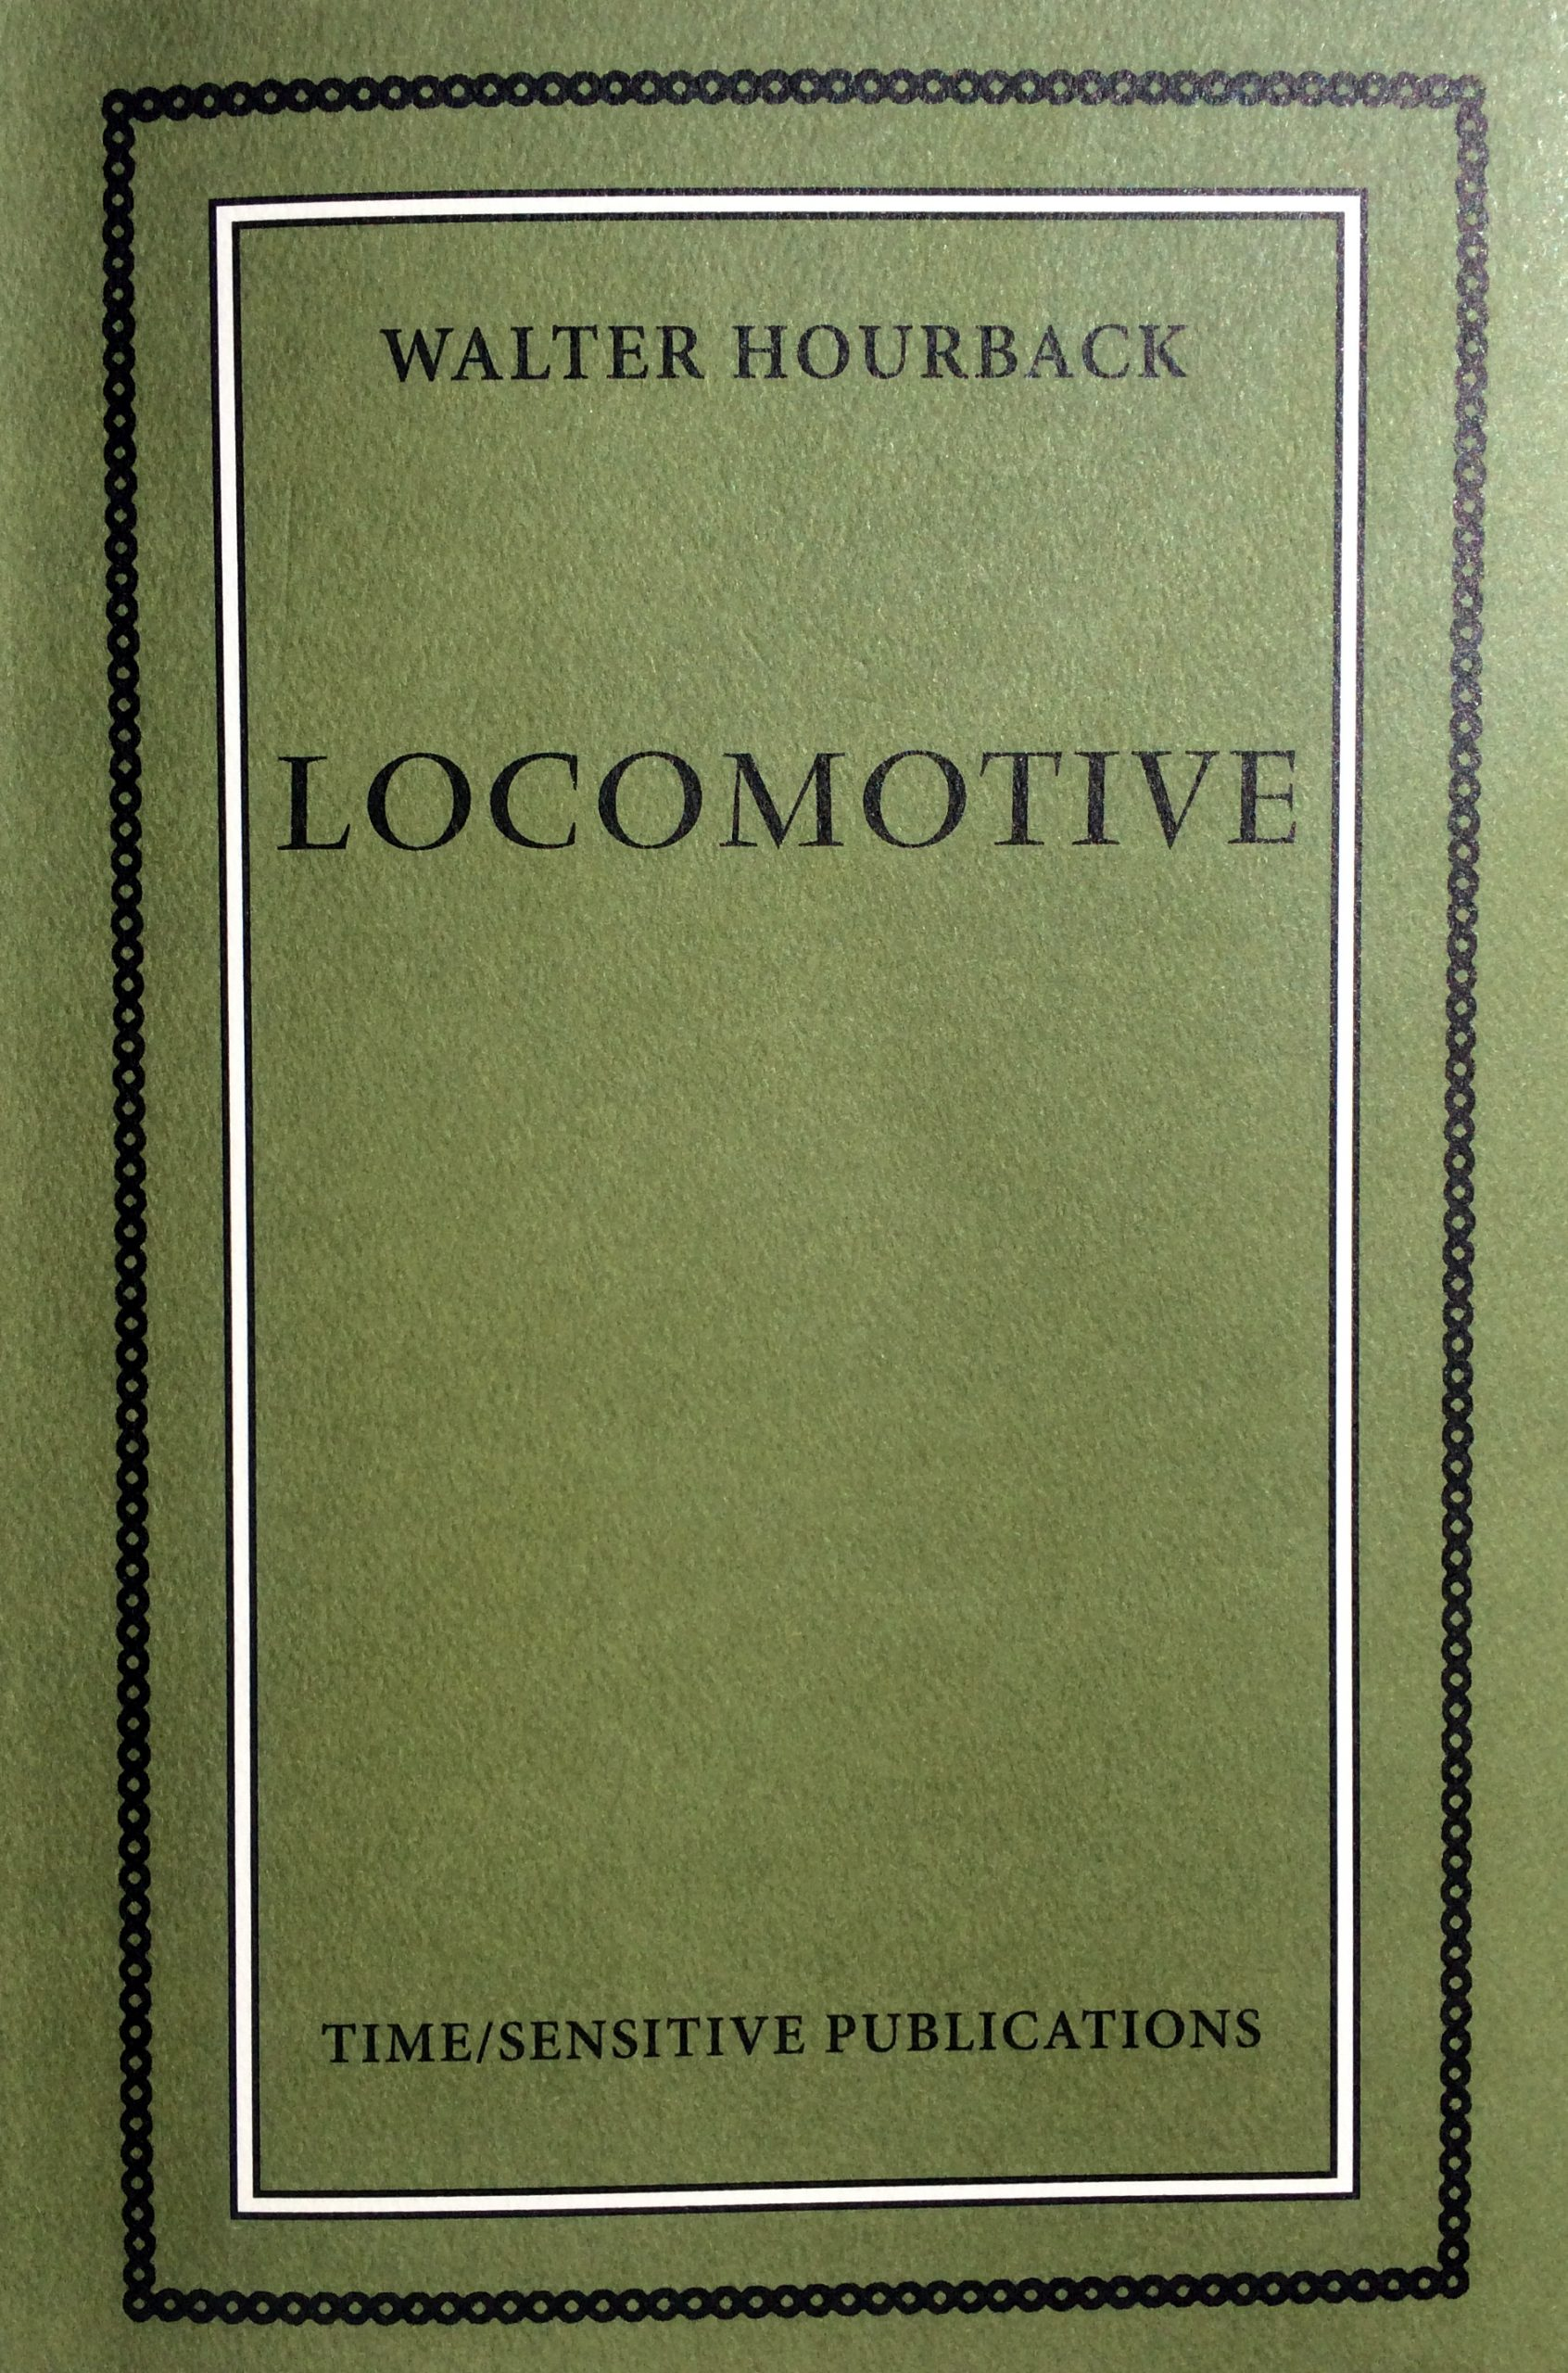 Book cover, Locomotive by Wallter Hourback